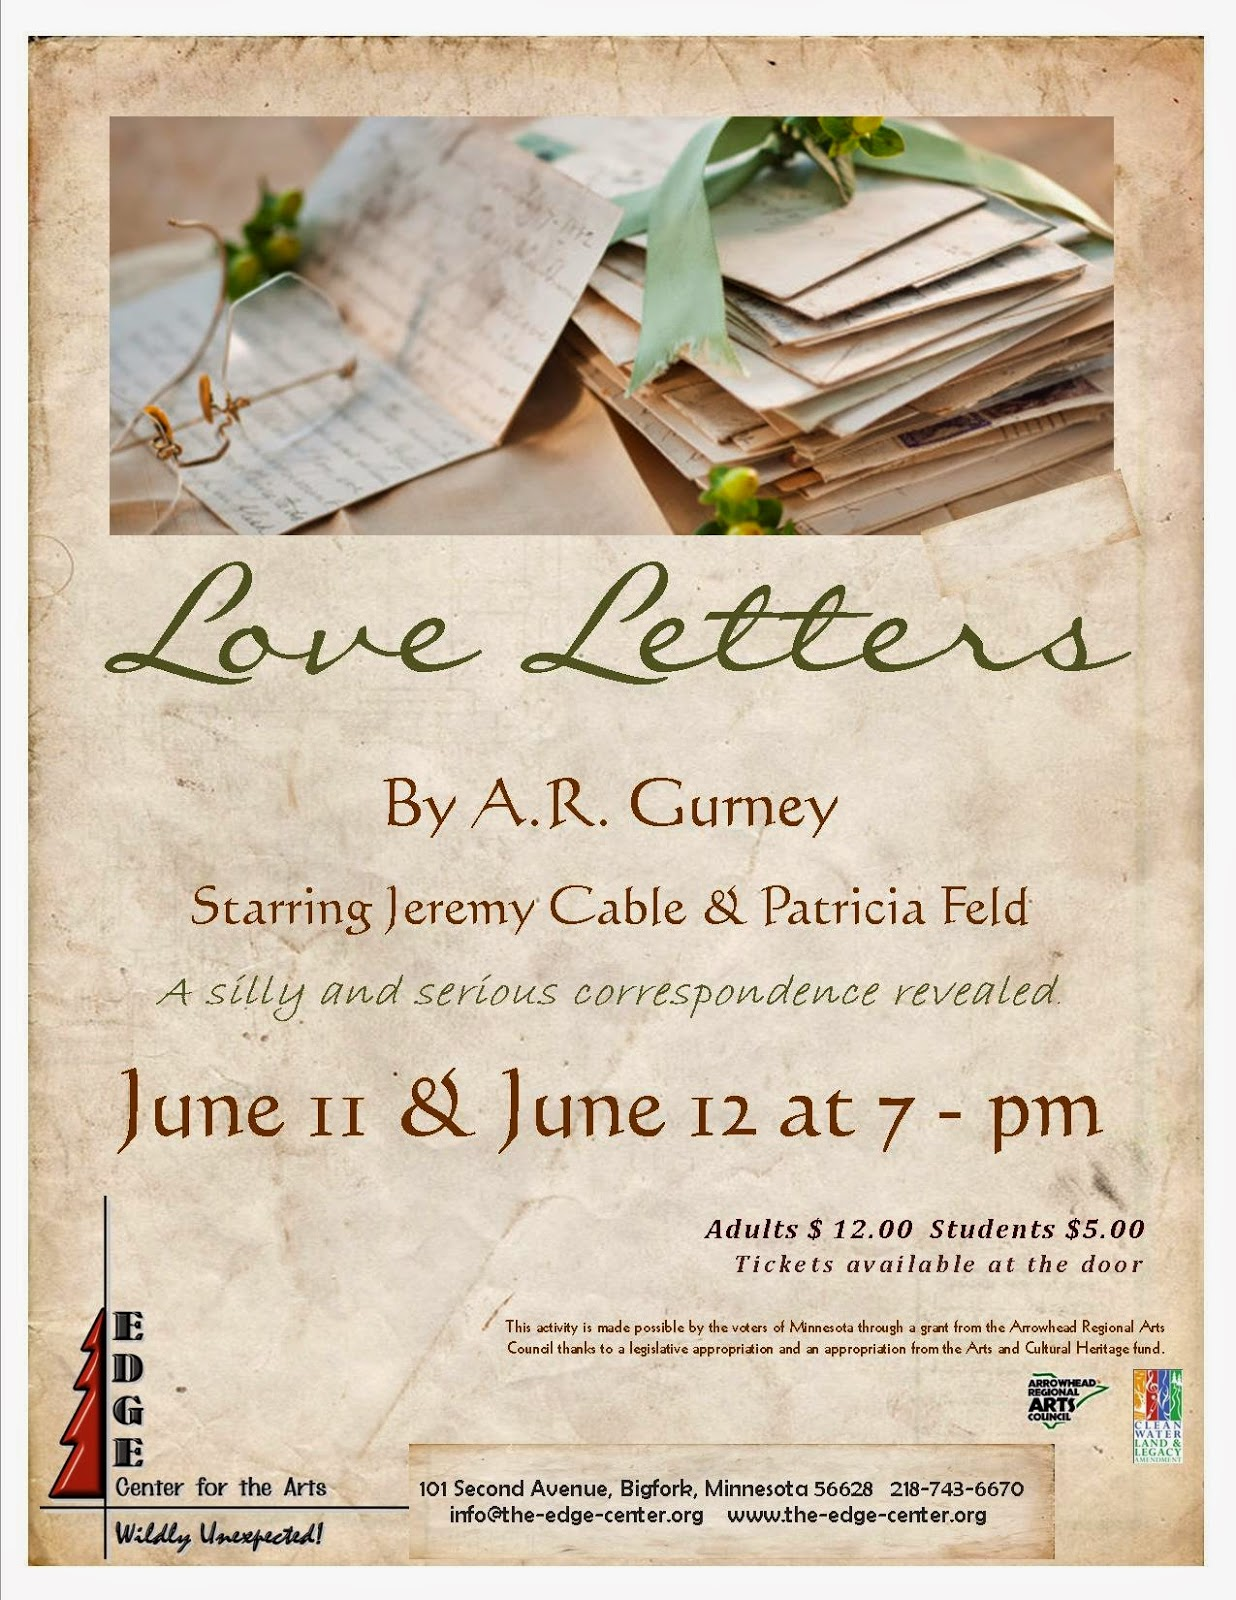 the play love letters on stage at the edge center in bigfork june 11th and 12th is surprisingly different for both actors and audiences